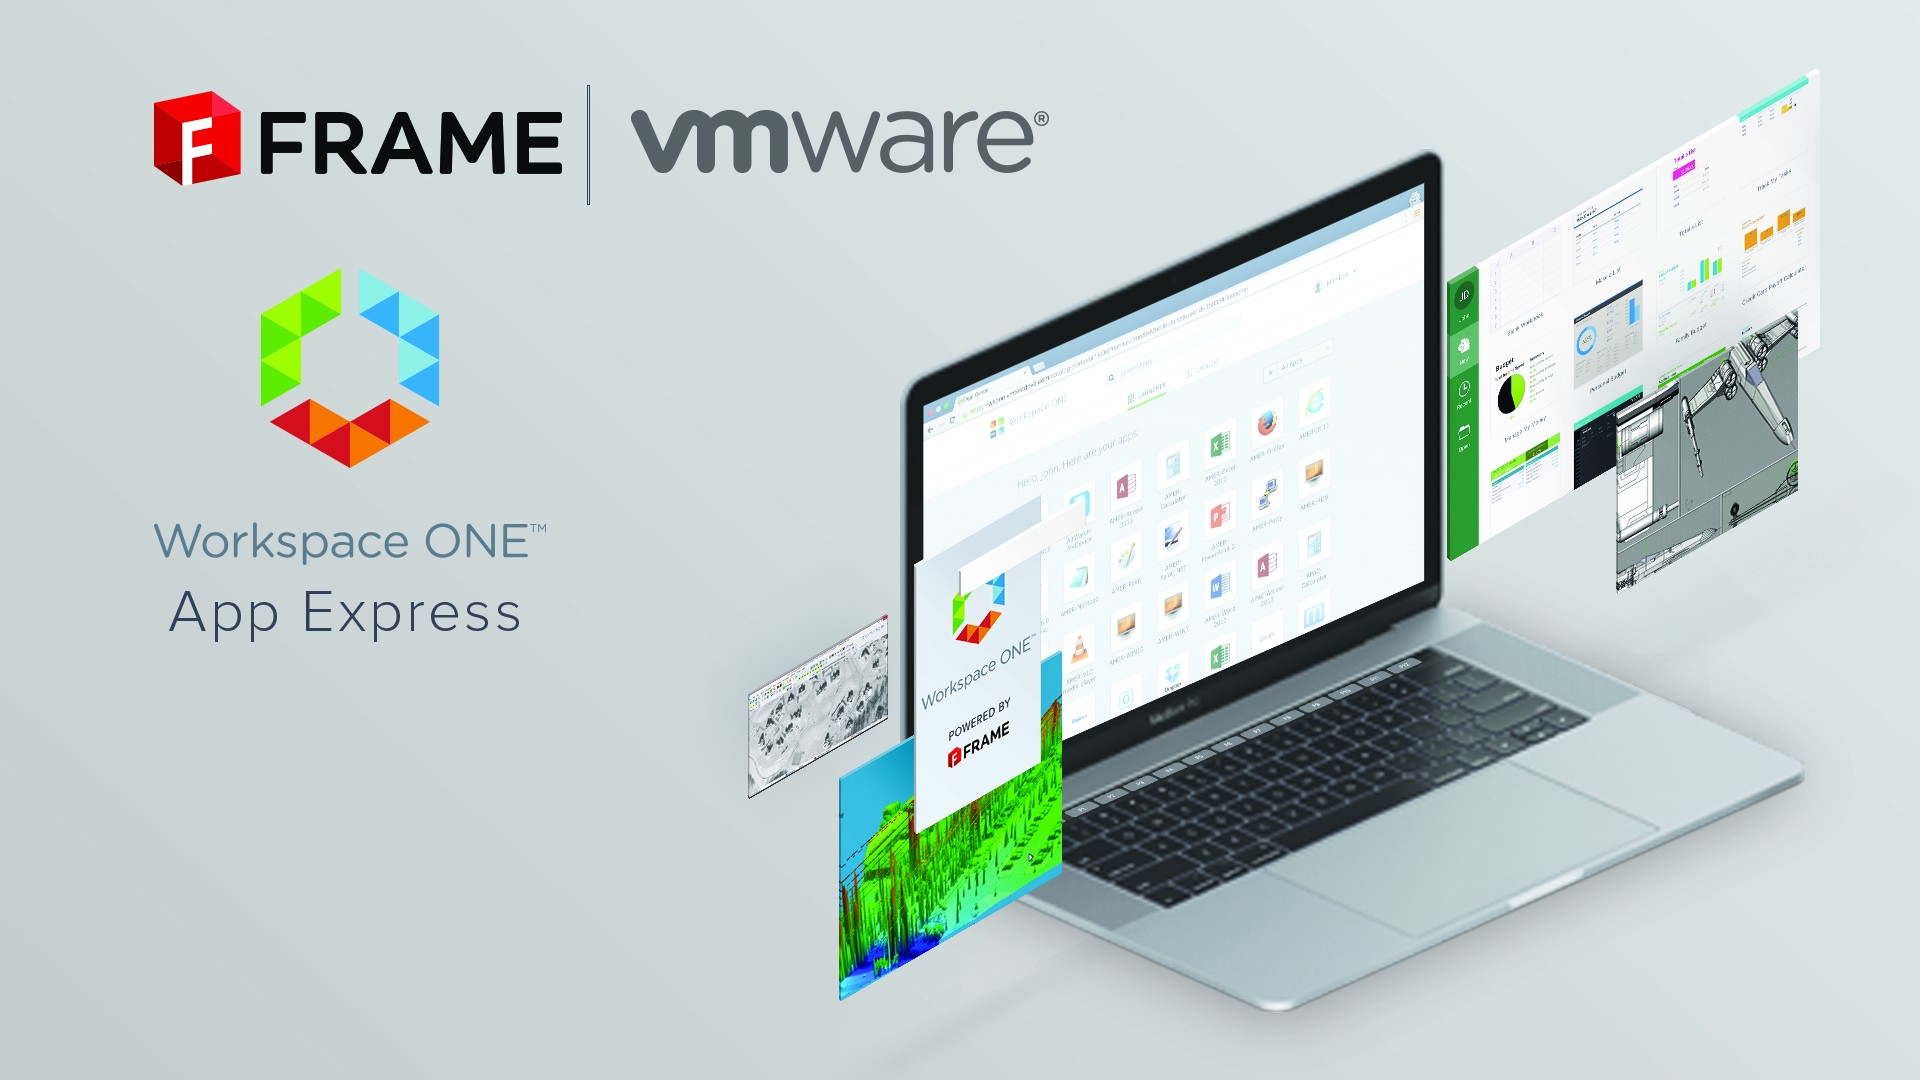 VMware partners with FRAME to deliver apps with Workspace ONE App Express